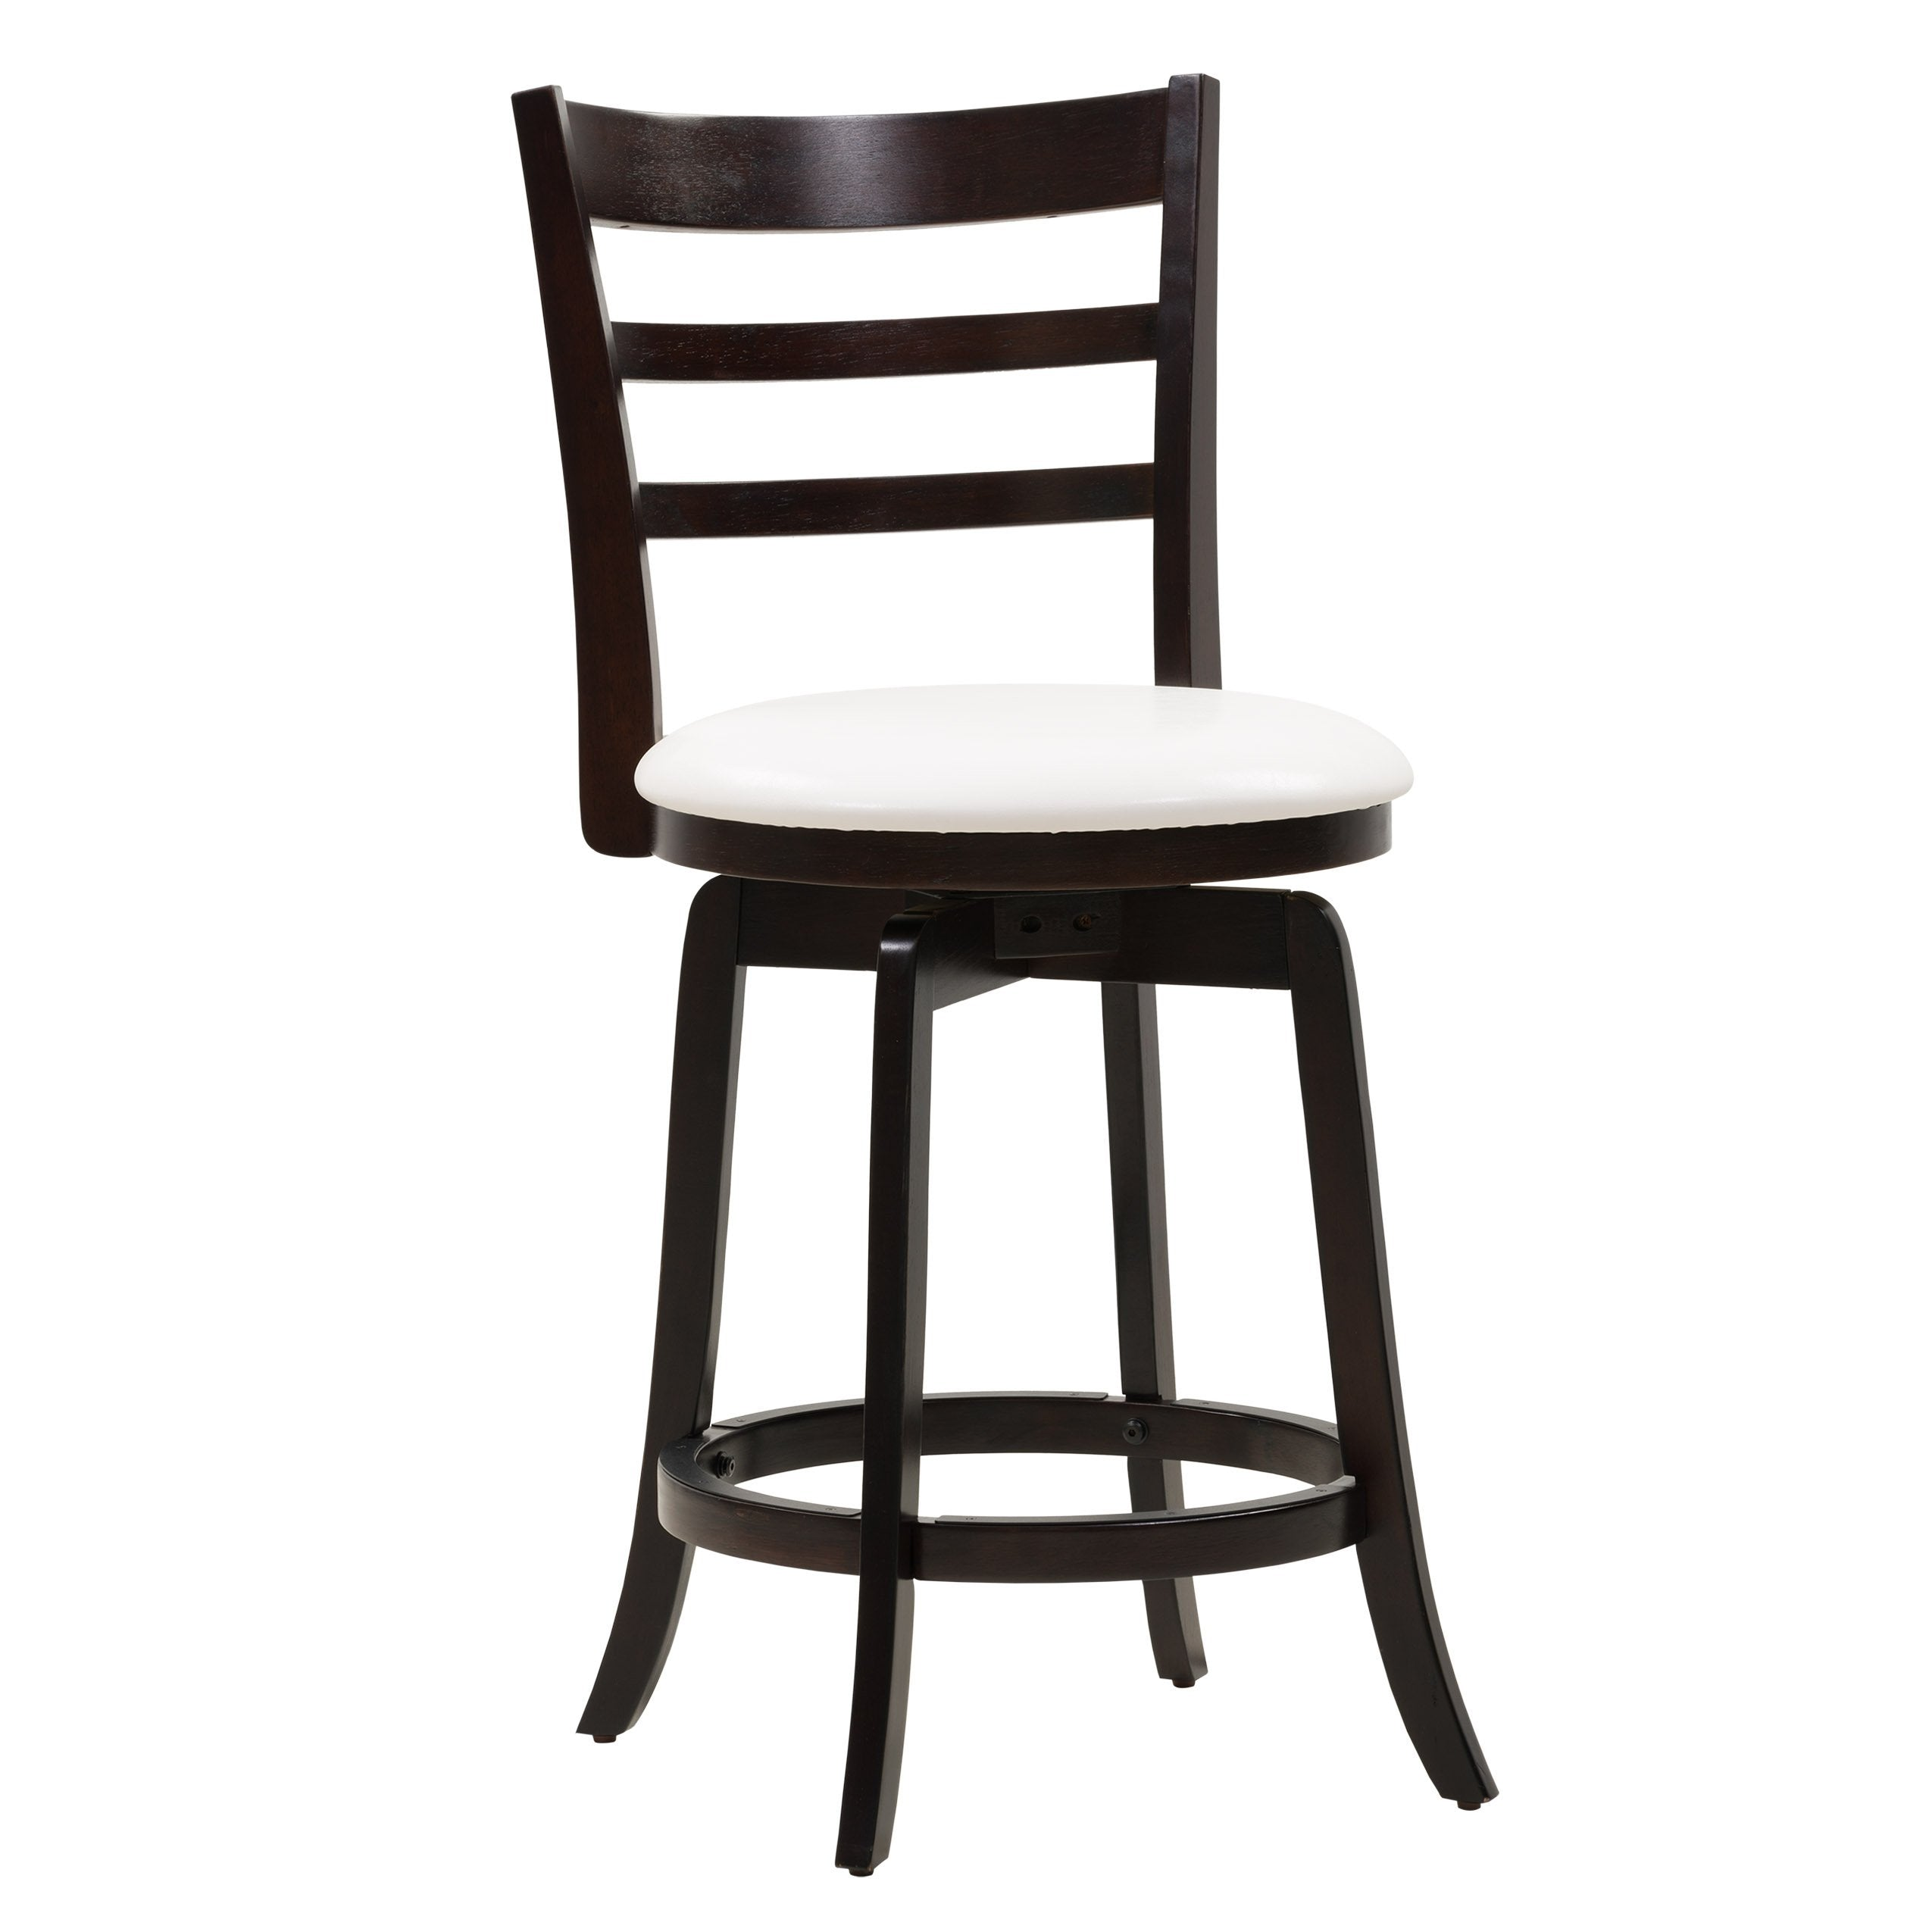 Sensational Wood Counter Height Bar Stool With White Leatherette Seat And 3 Slat Backrest Pabps2019 Chair Design Images Pabps2019Com